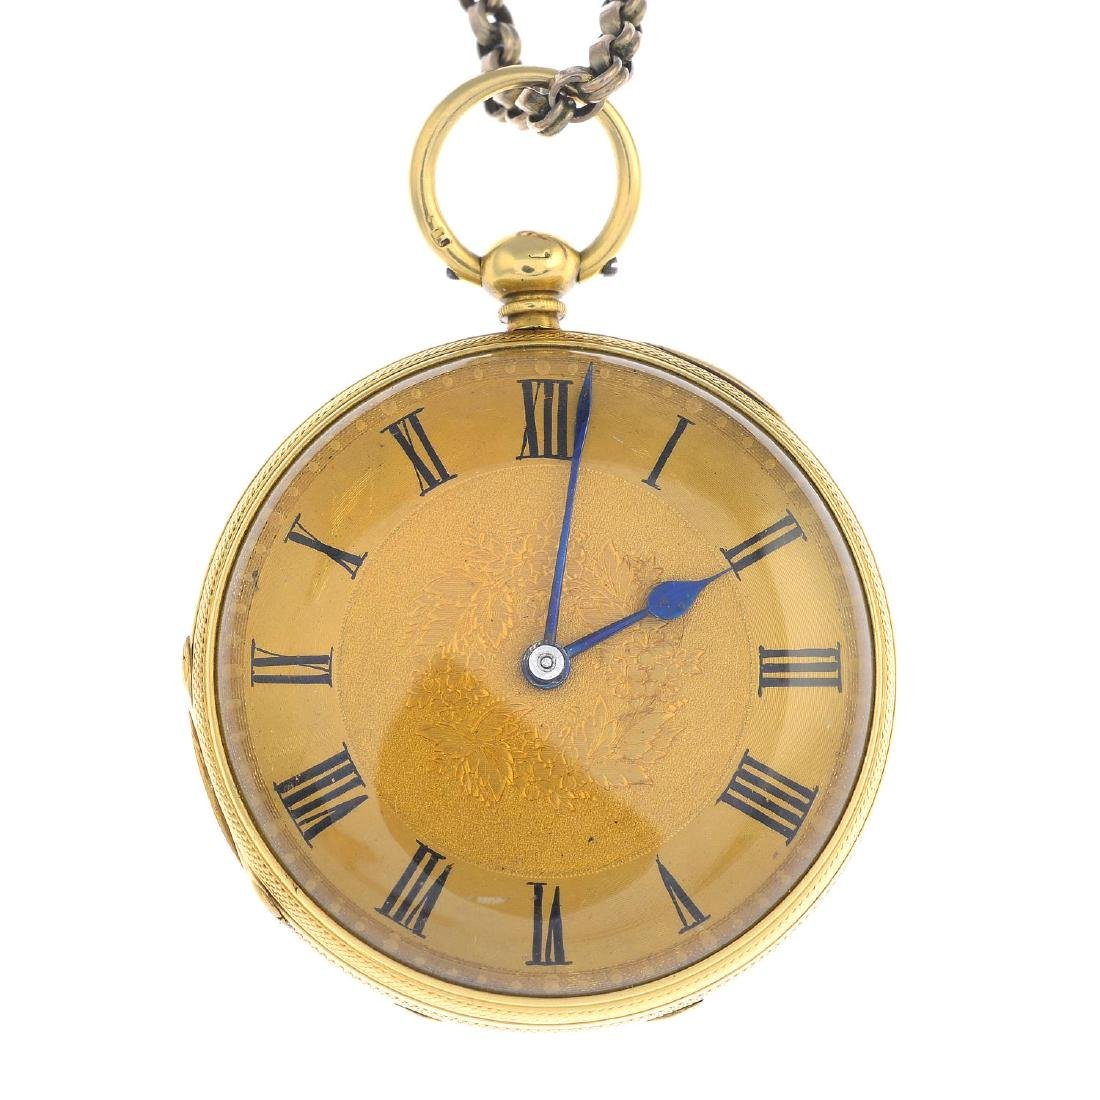 An early 20th century 18ct gold pocket watch. The